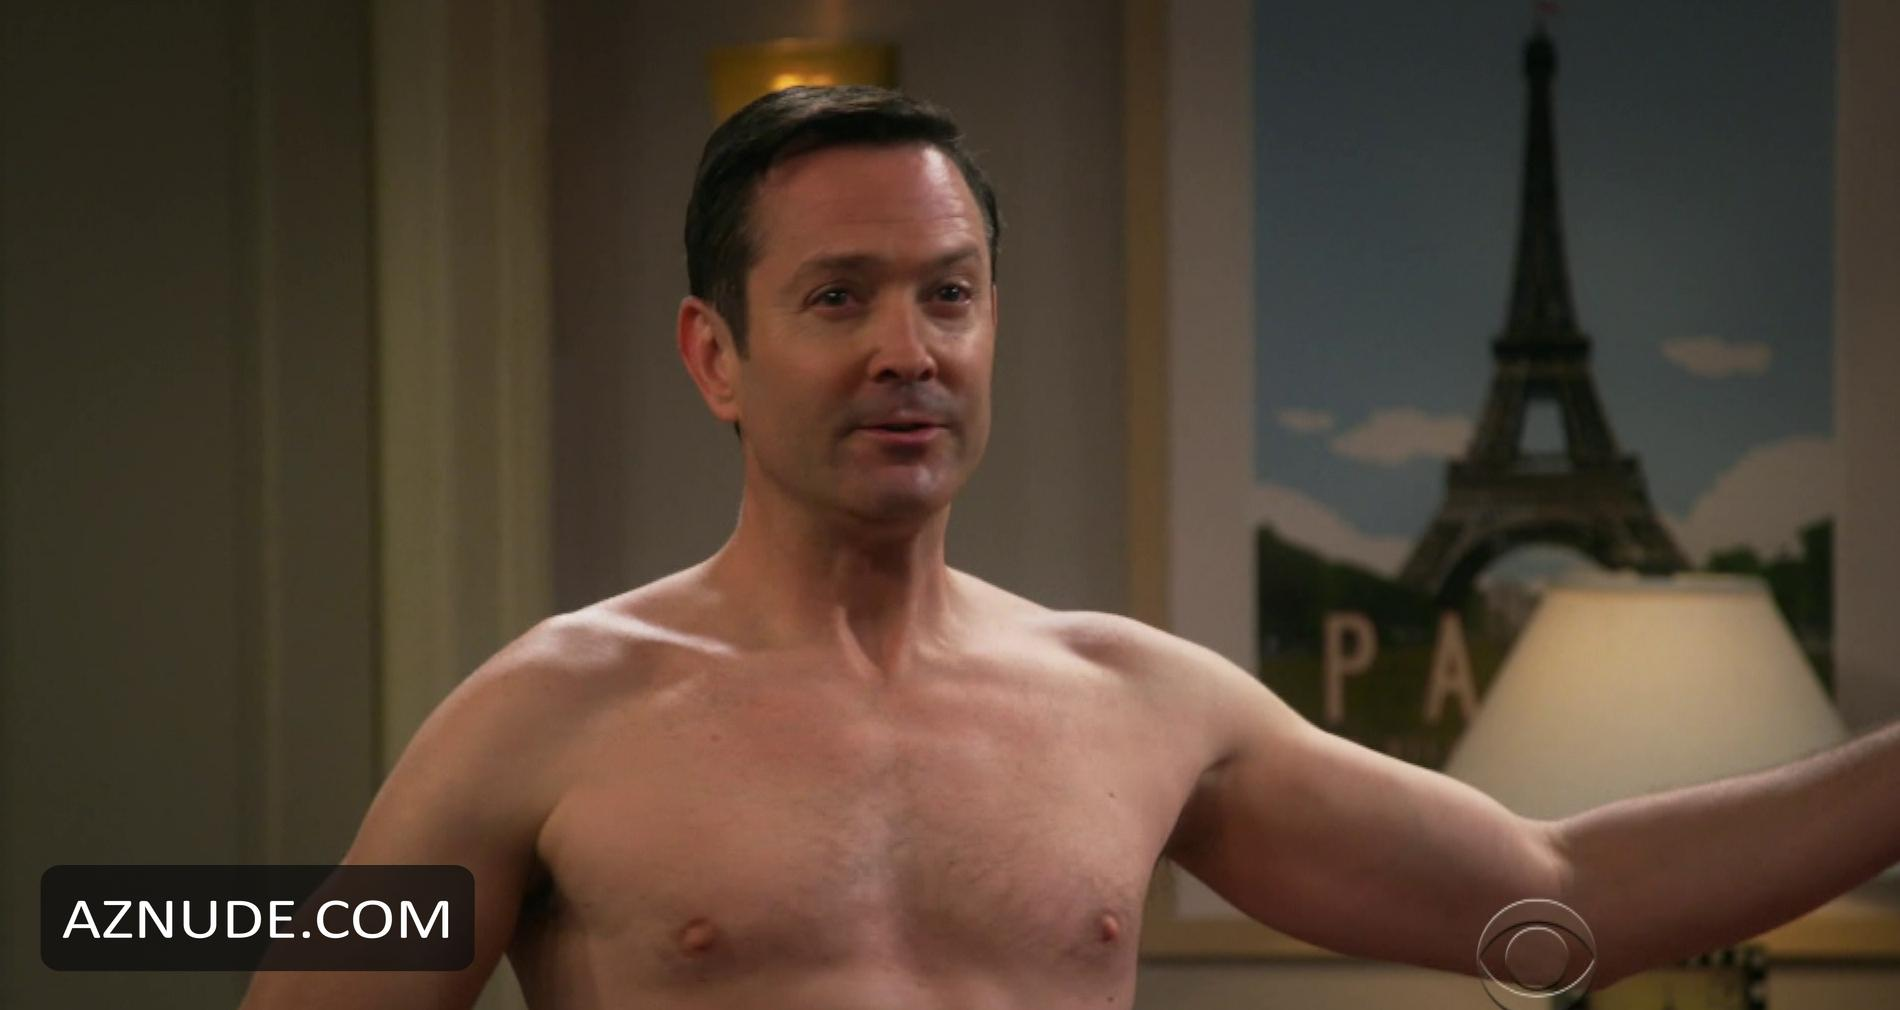 The odd couple gets its first nude scene